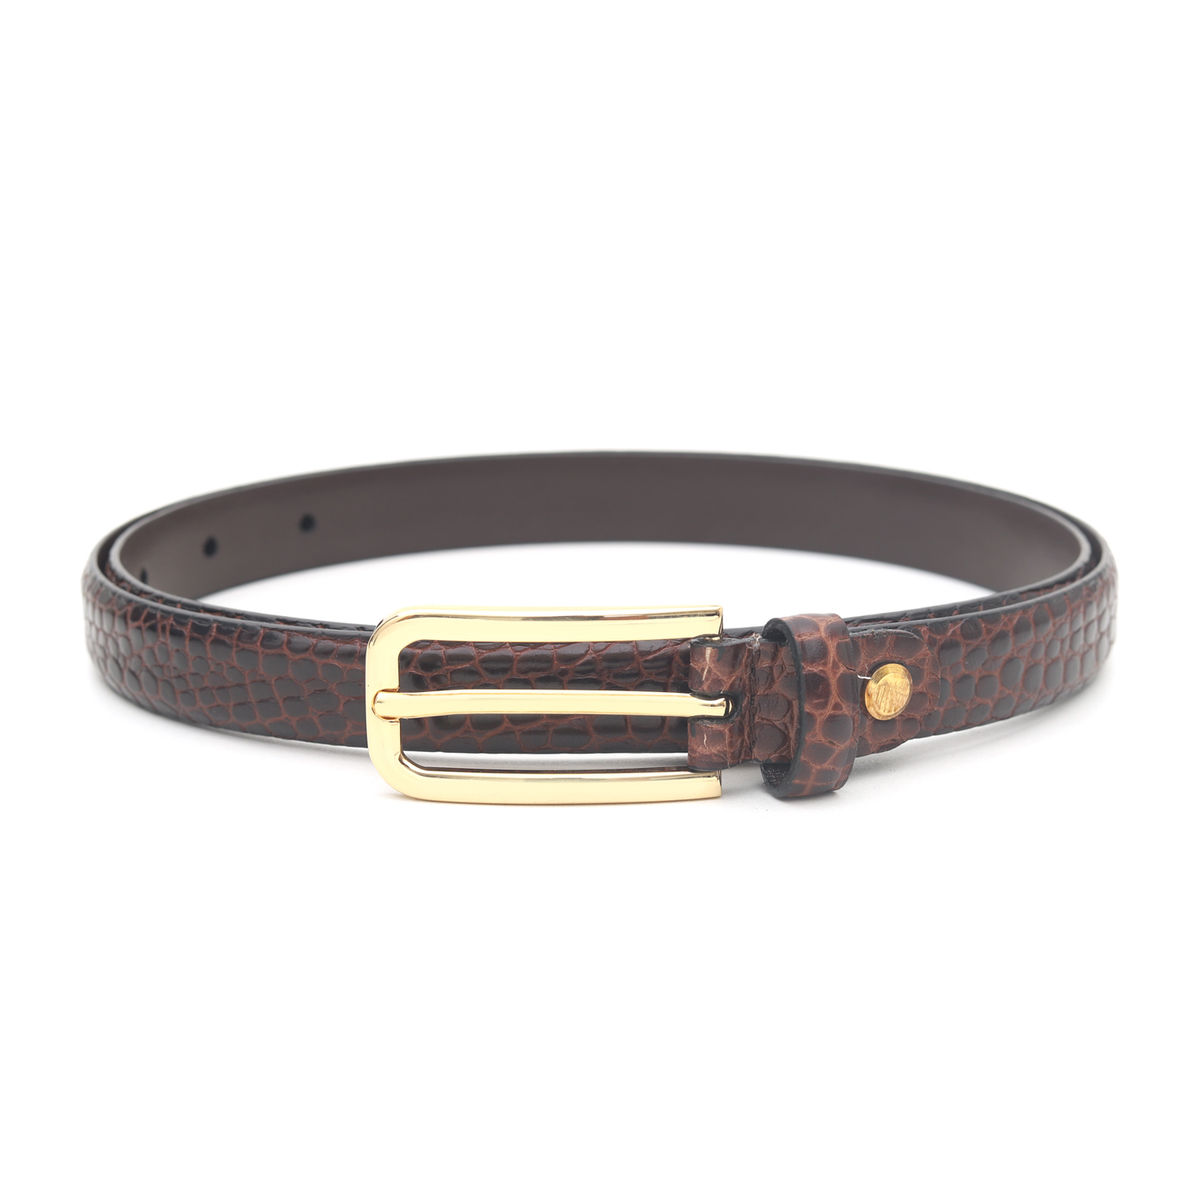 891cc73b1f6b6 ... Da Milano Brown Ladies Belt. sold-out-image zoom Da ...